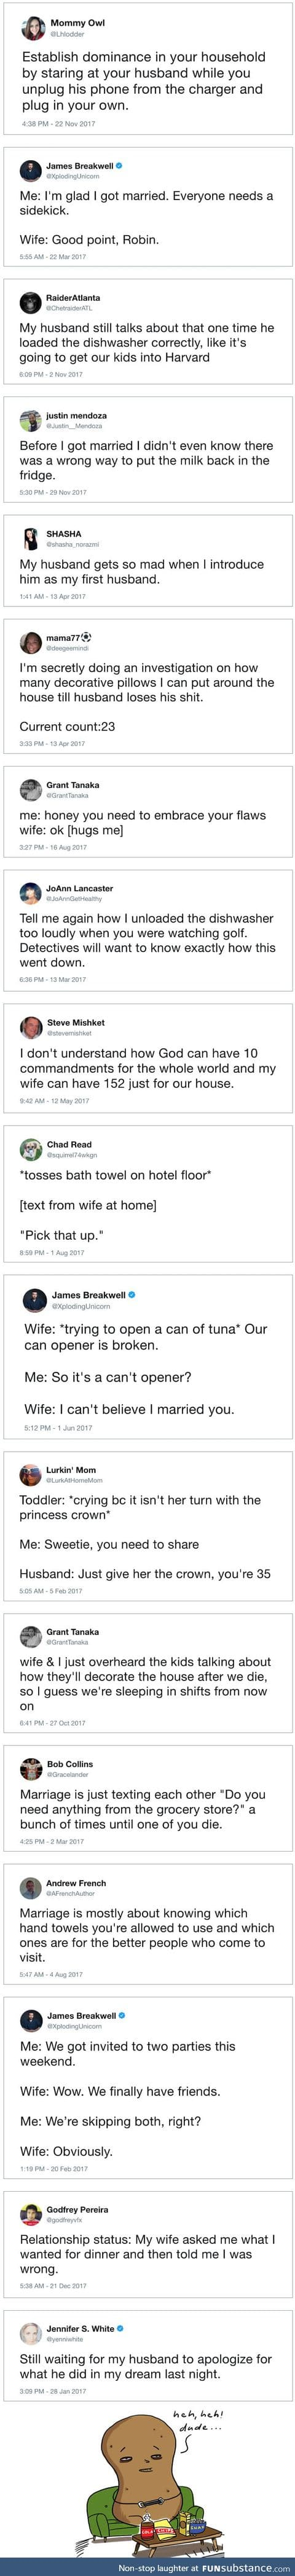 15+ hilarious marriage tweets in 2017